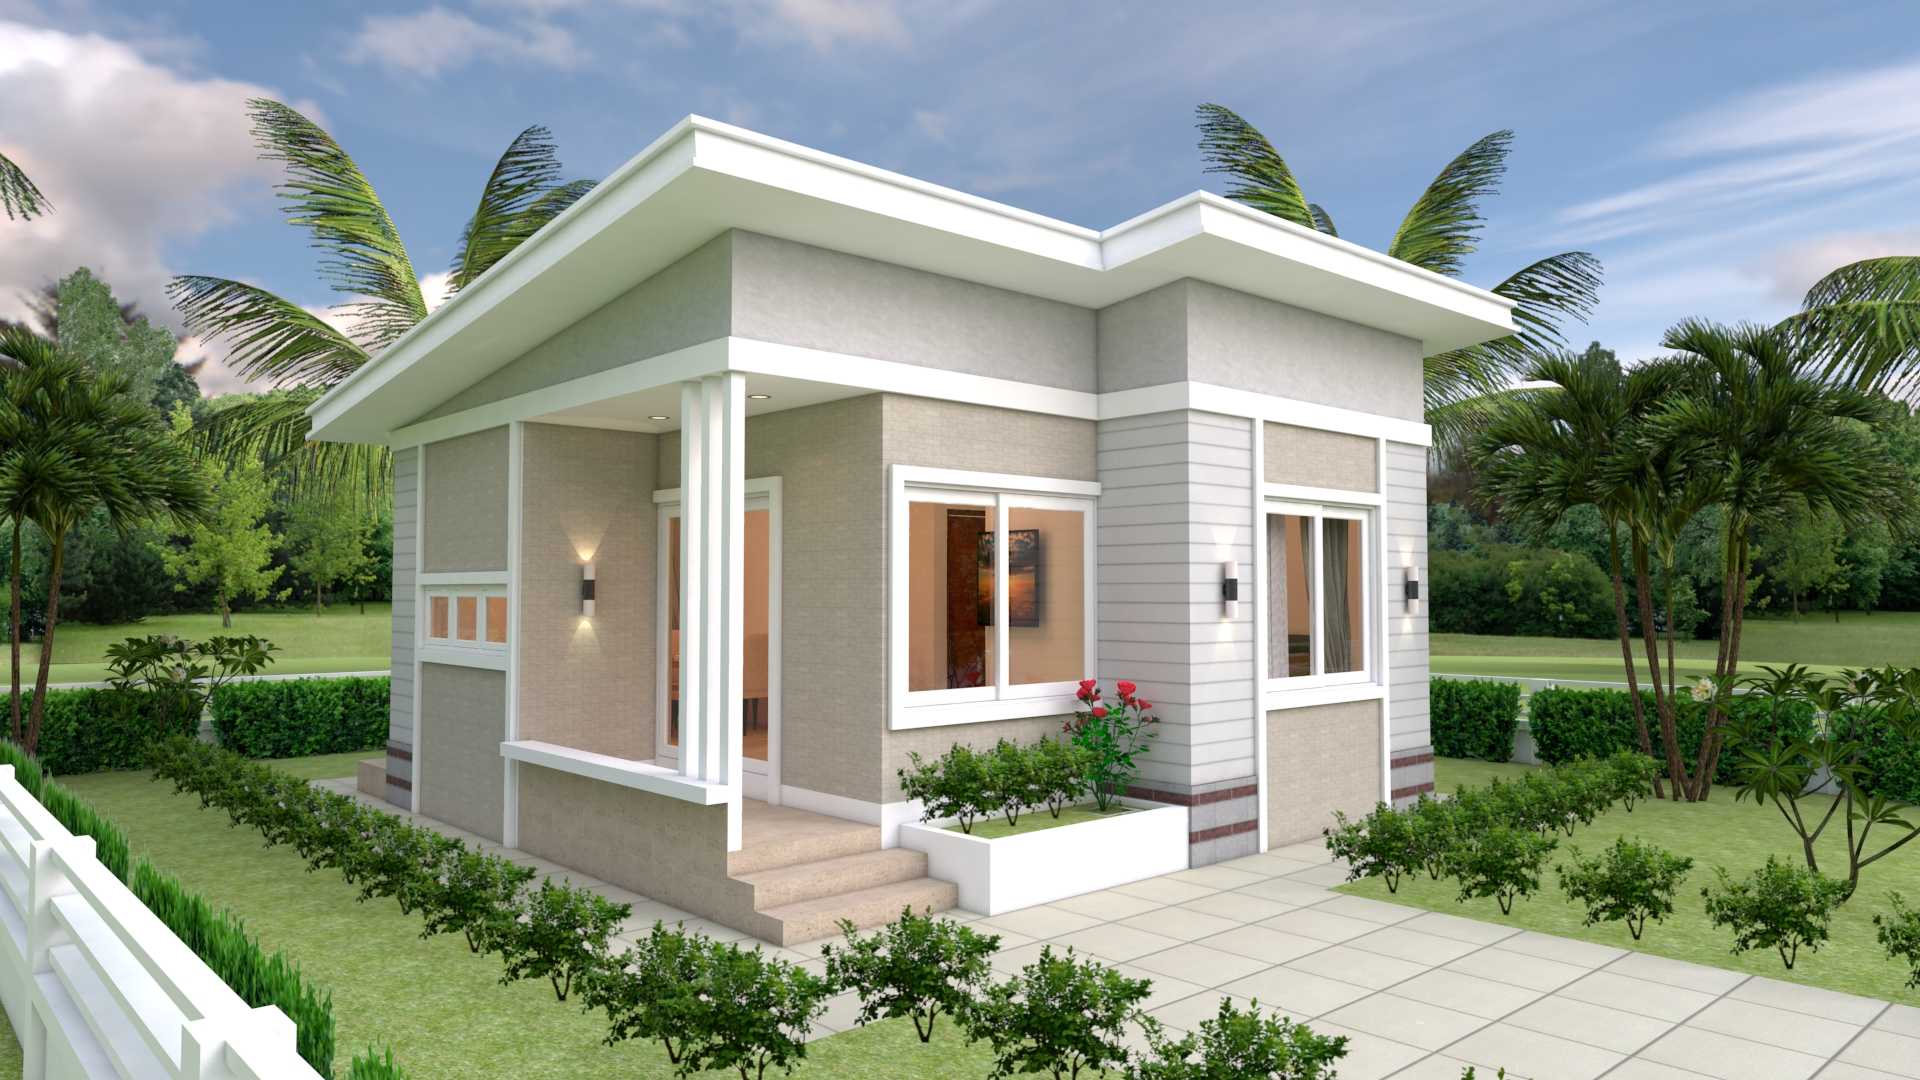 House Design Plans 7x7 with 2 Bedrooms Full Plans - Sam ...